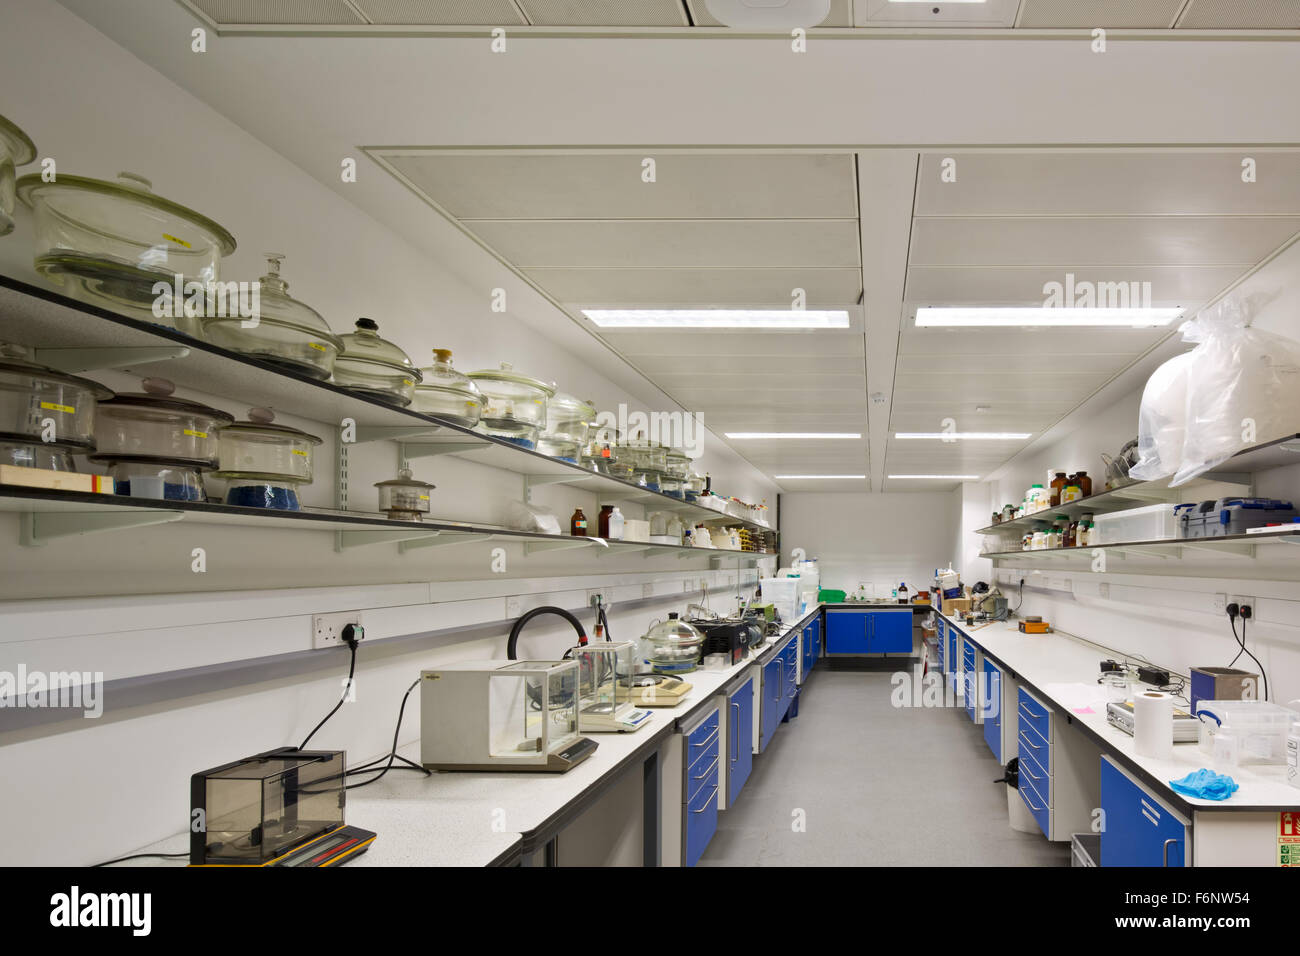 Laboratory at Imperial College, London. Royal school of Mines Building. - Stock Image